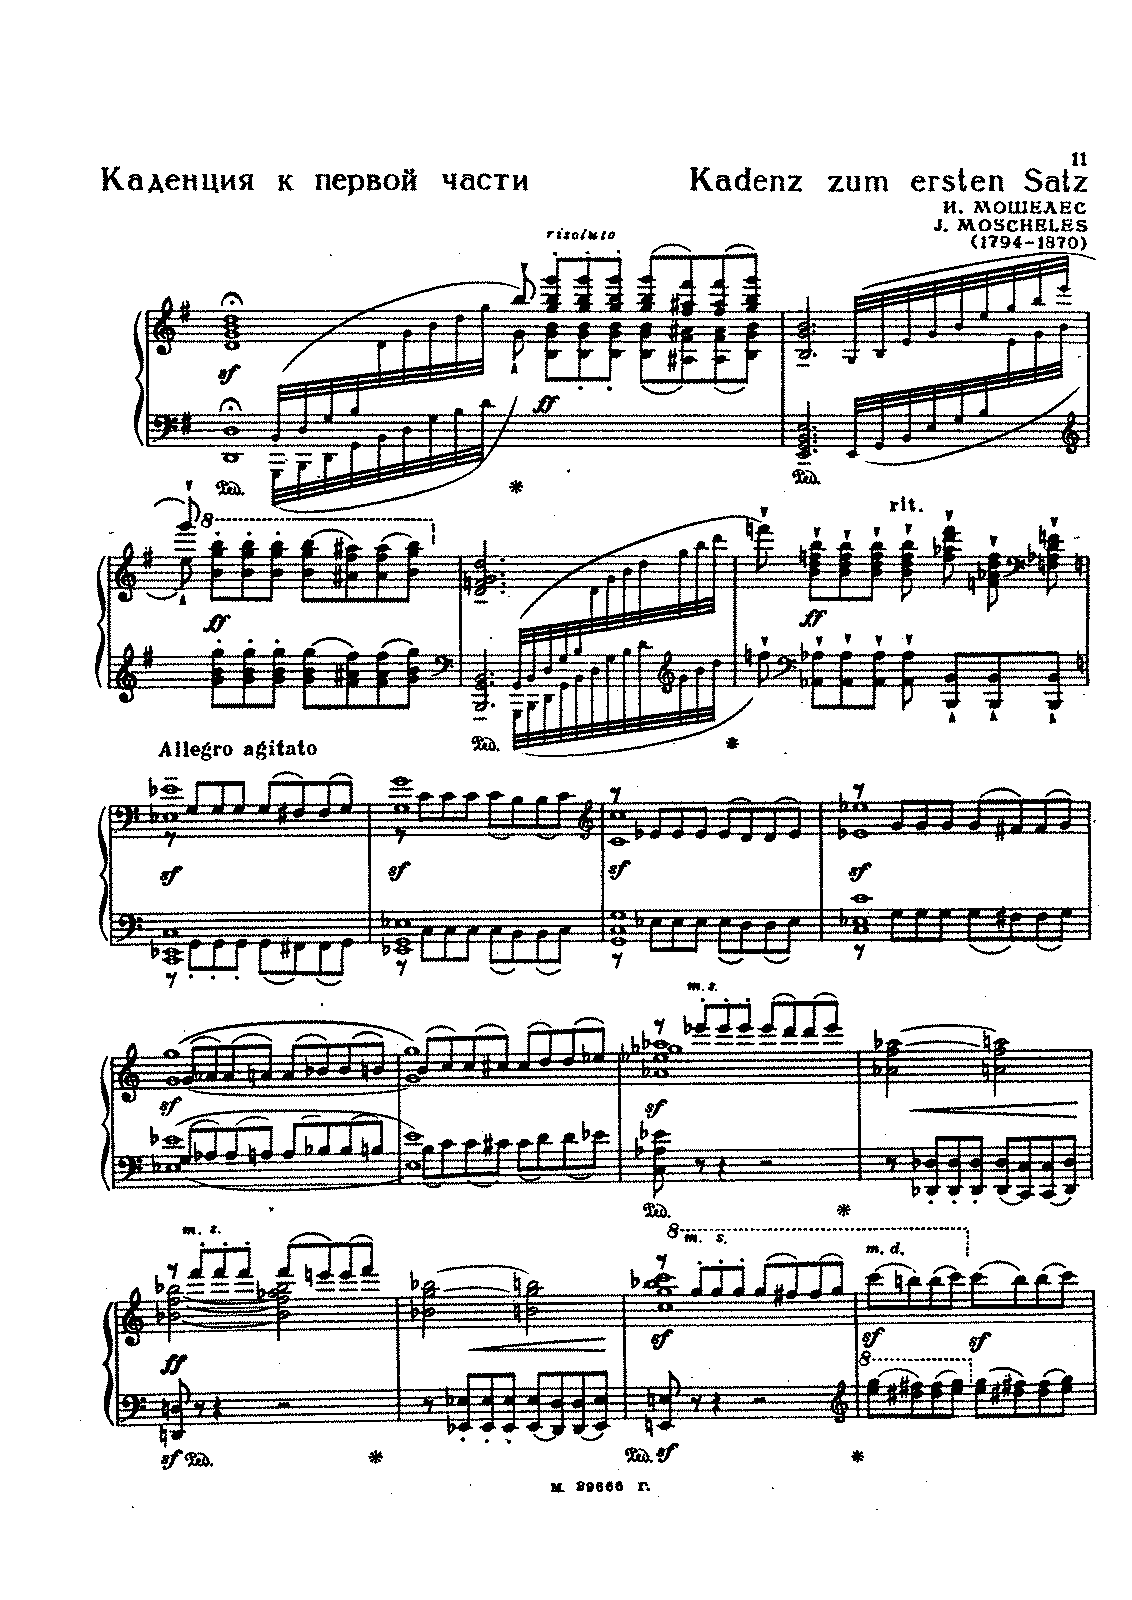 Beethoven-Moscheles Cadenza for Concerto -4 in G.pdf